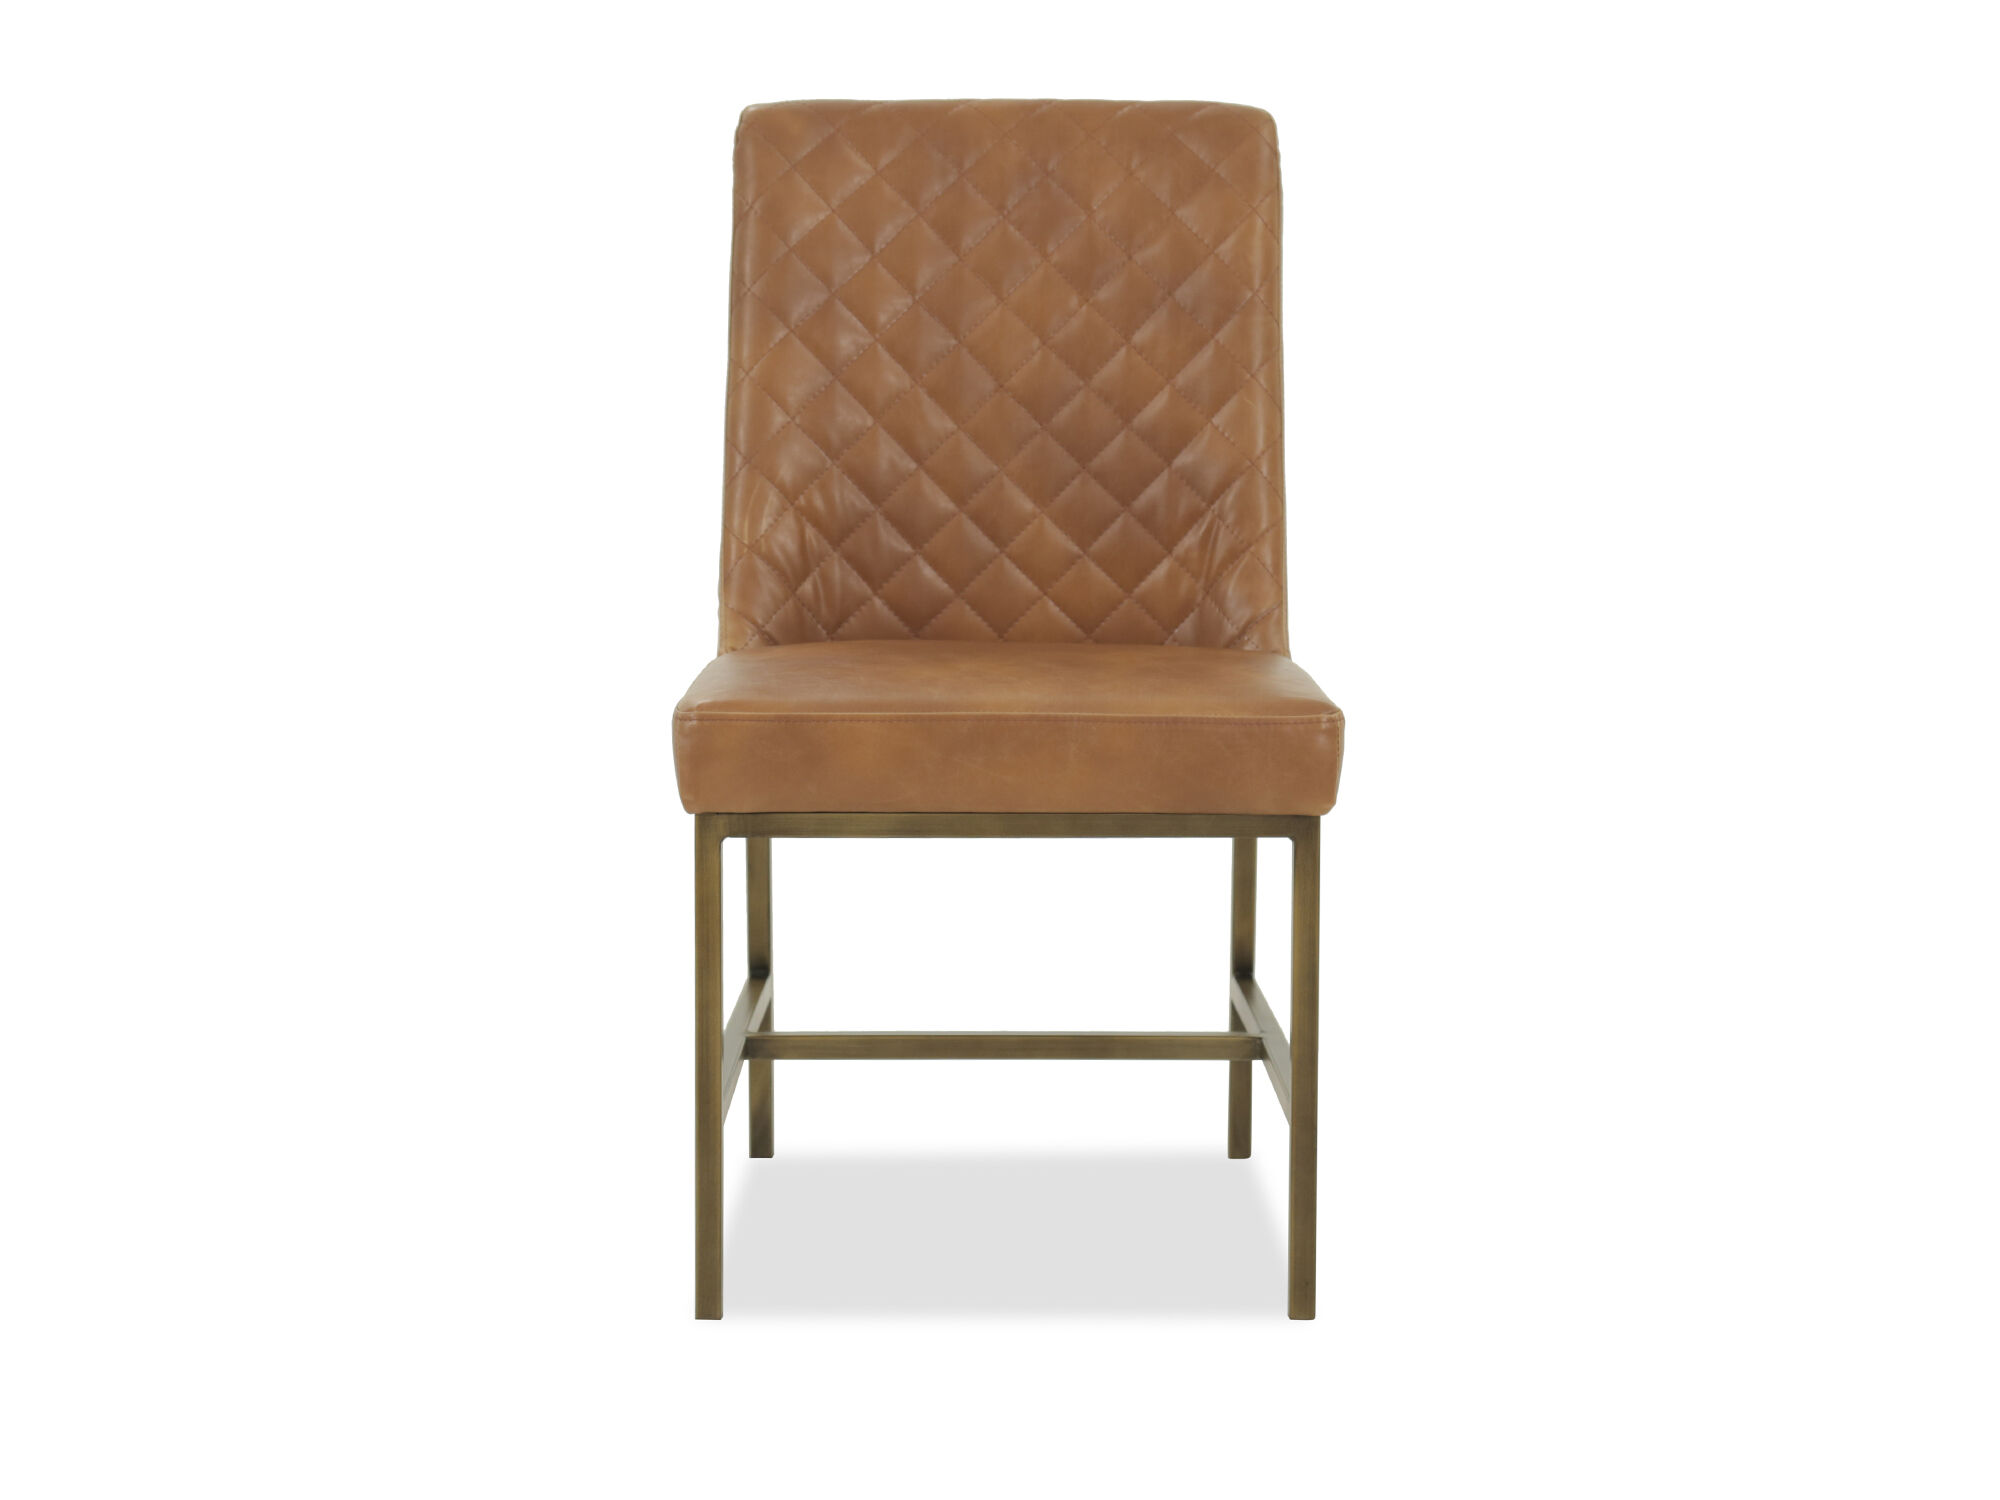 leather tufted dining chair folding high uk 20 quot in caramel mathis